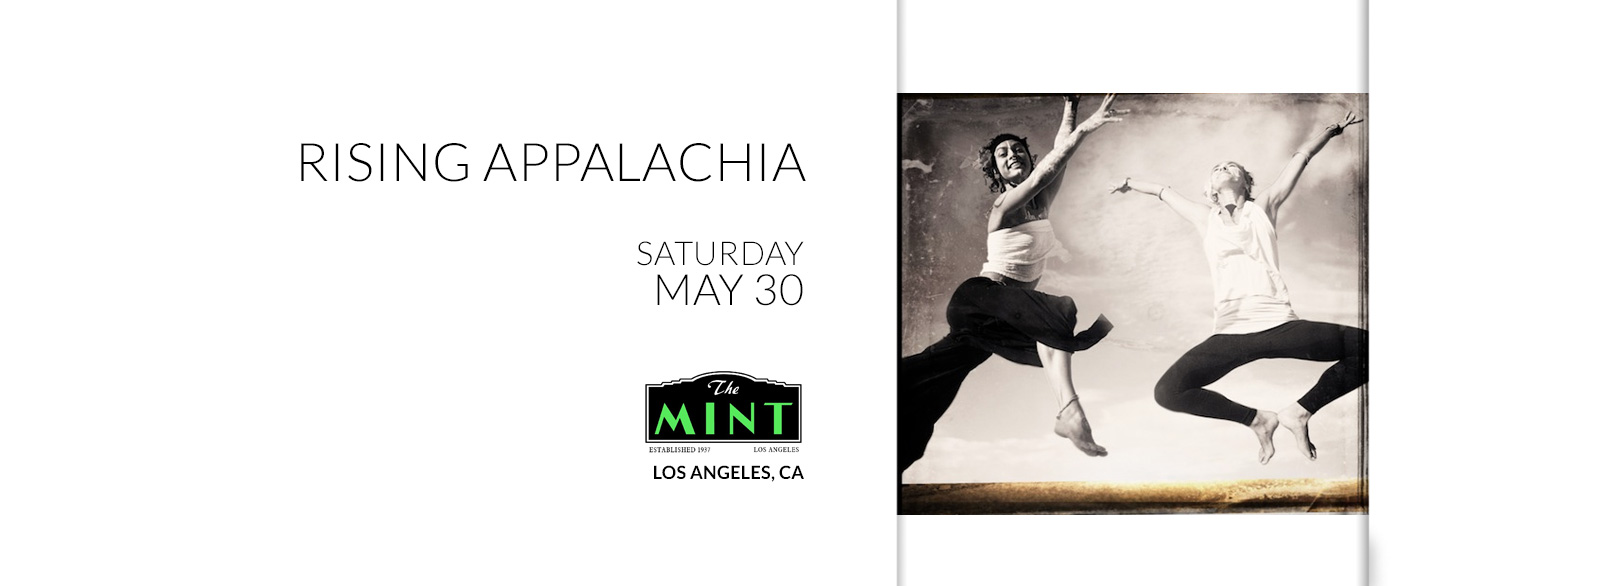 Rising Appalachia @ The Mint LA